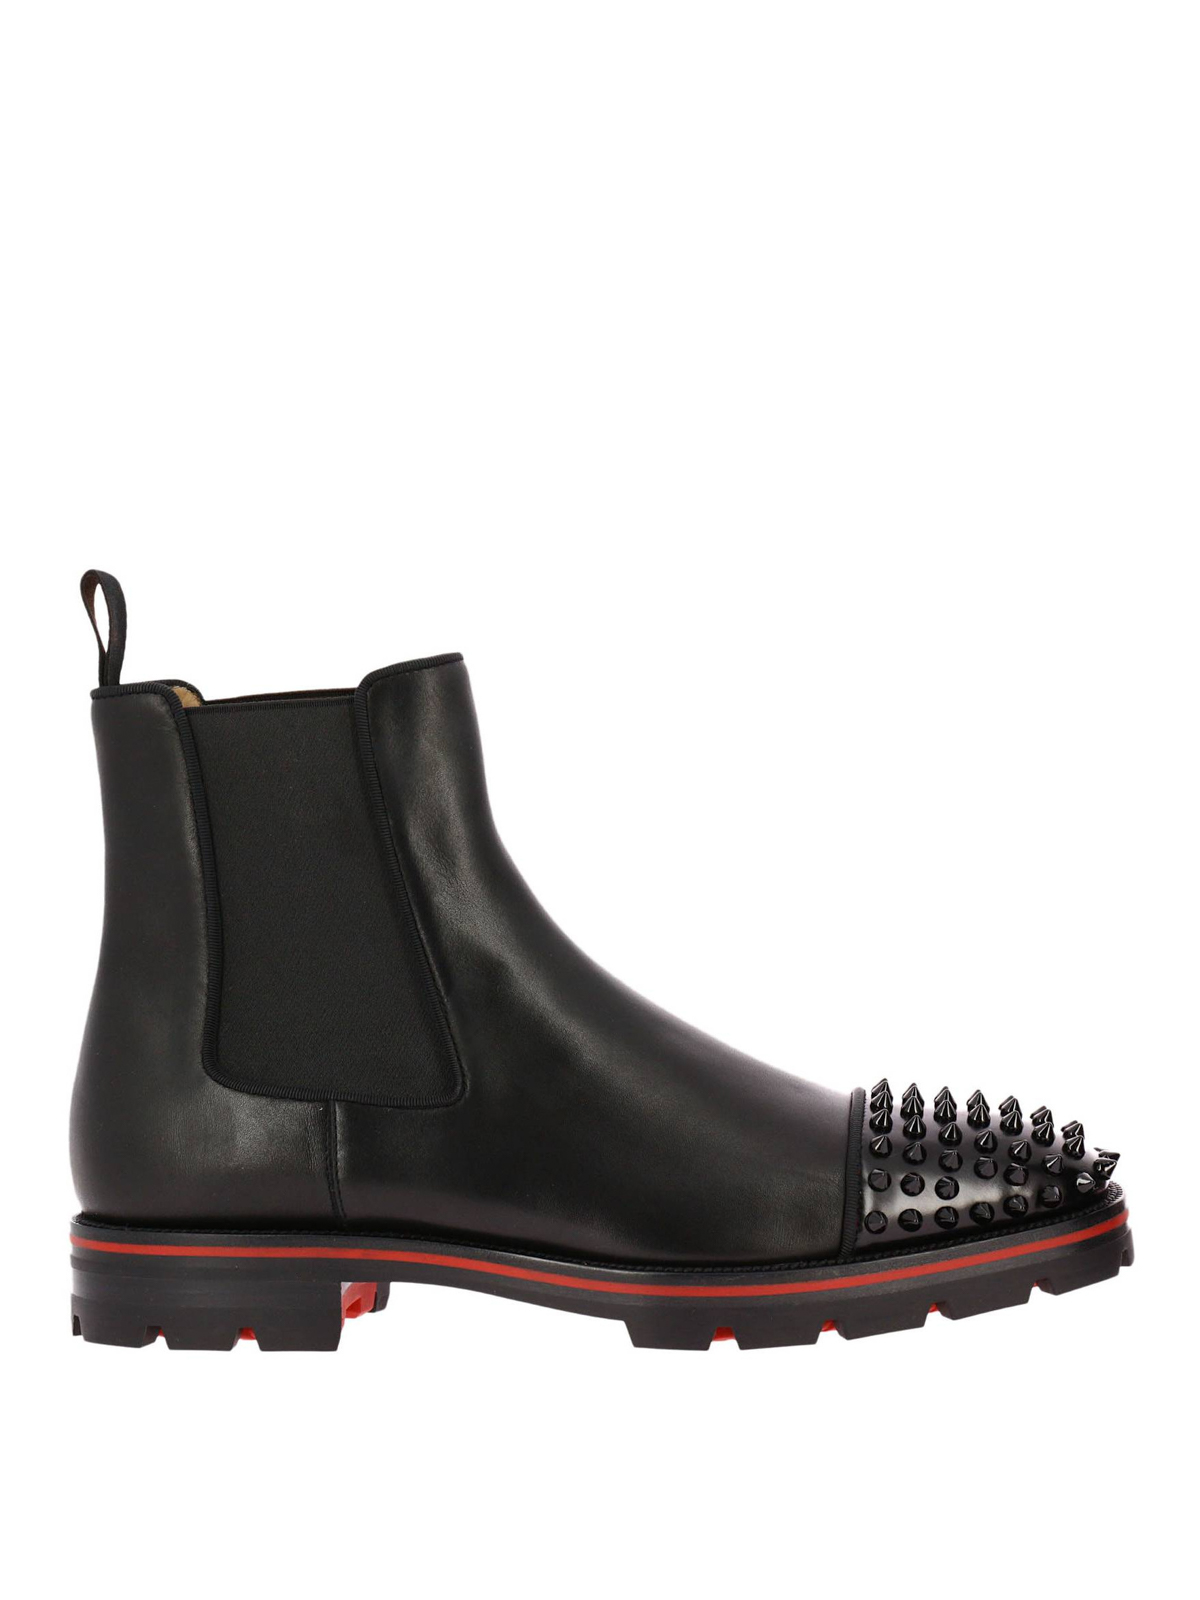 92655545cfa Christian Louboutin - Melon Spikes leather booties - ankle boots ...